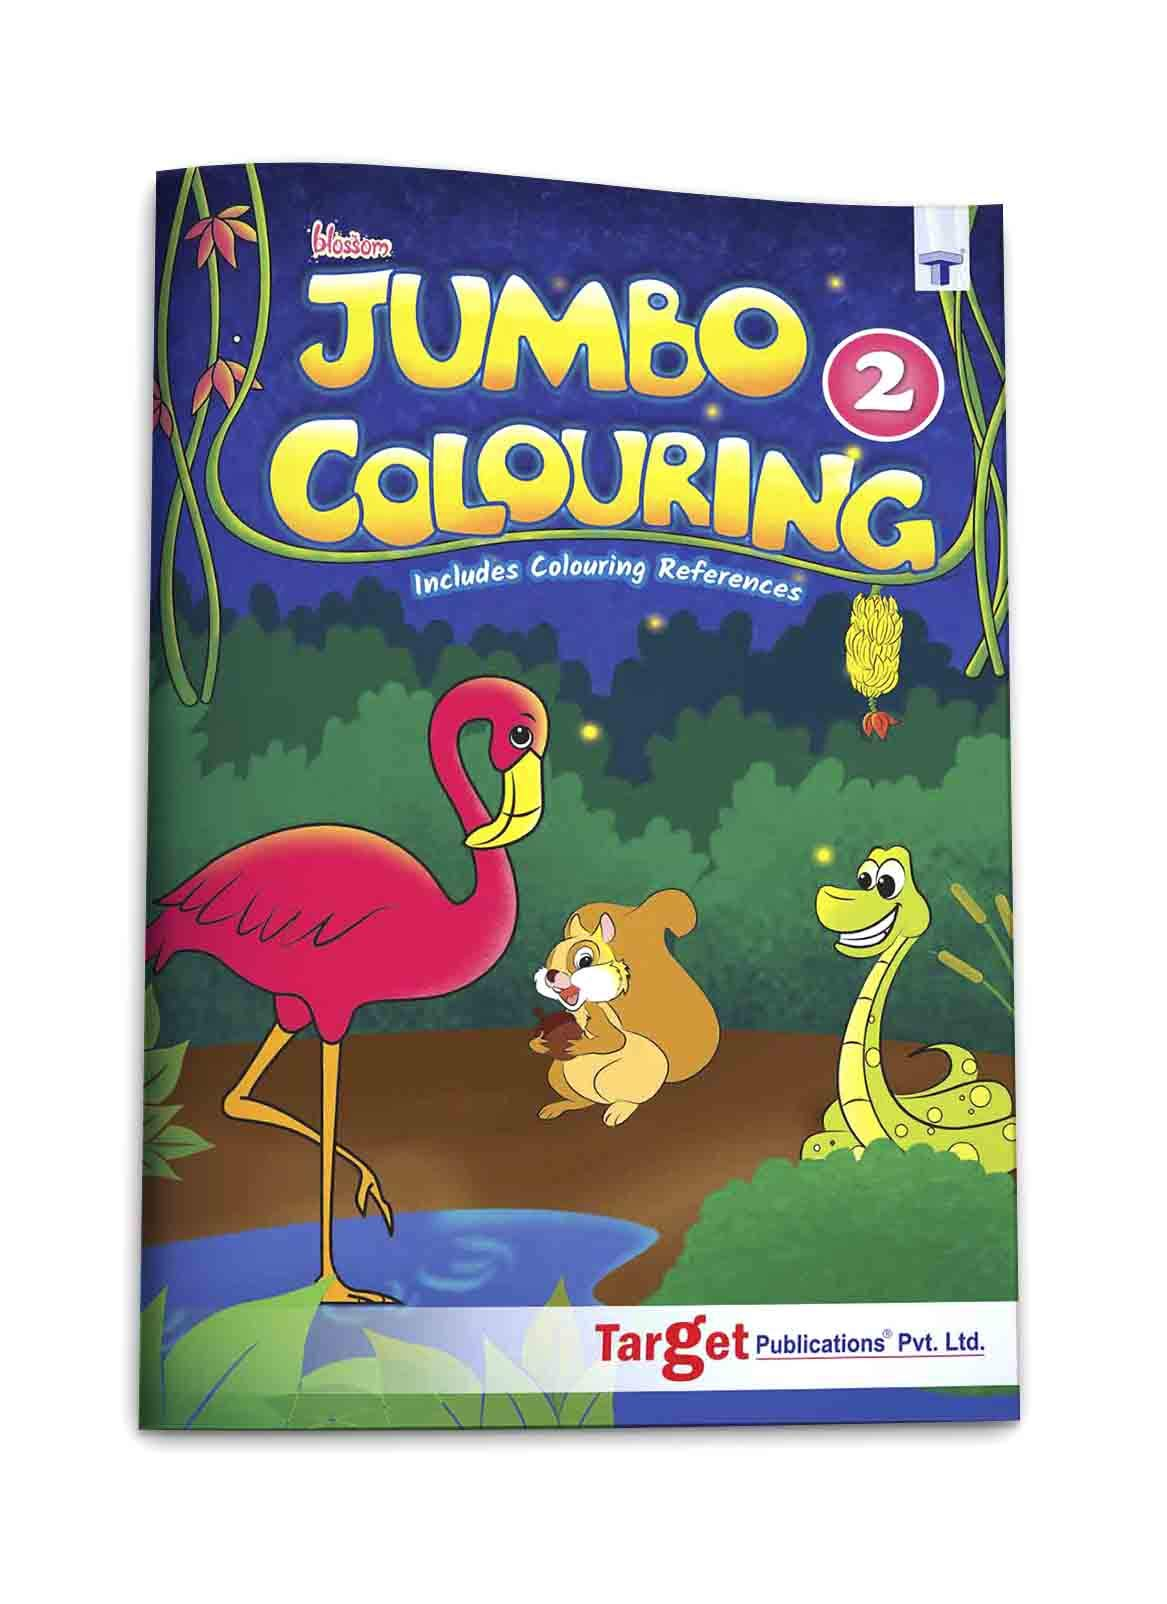 Blossom Jumbo Creative Colouring Book for Kids | 5 to 7 years old | Best Gift to Children for Drawing, Coloring and Painting with Colour Reference Guide | A3 Size | Level 2 Paperback – 1 January 2019